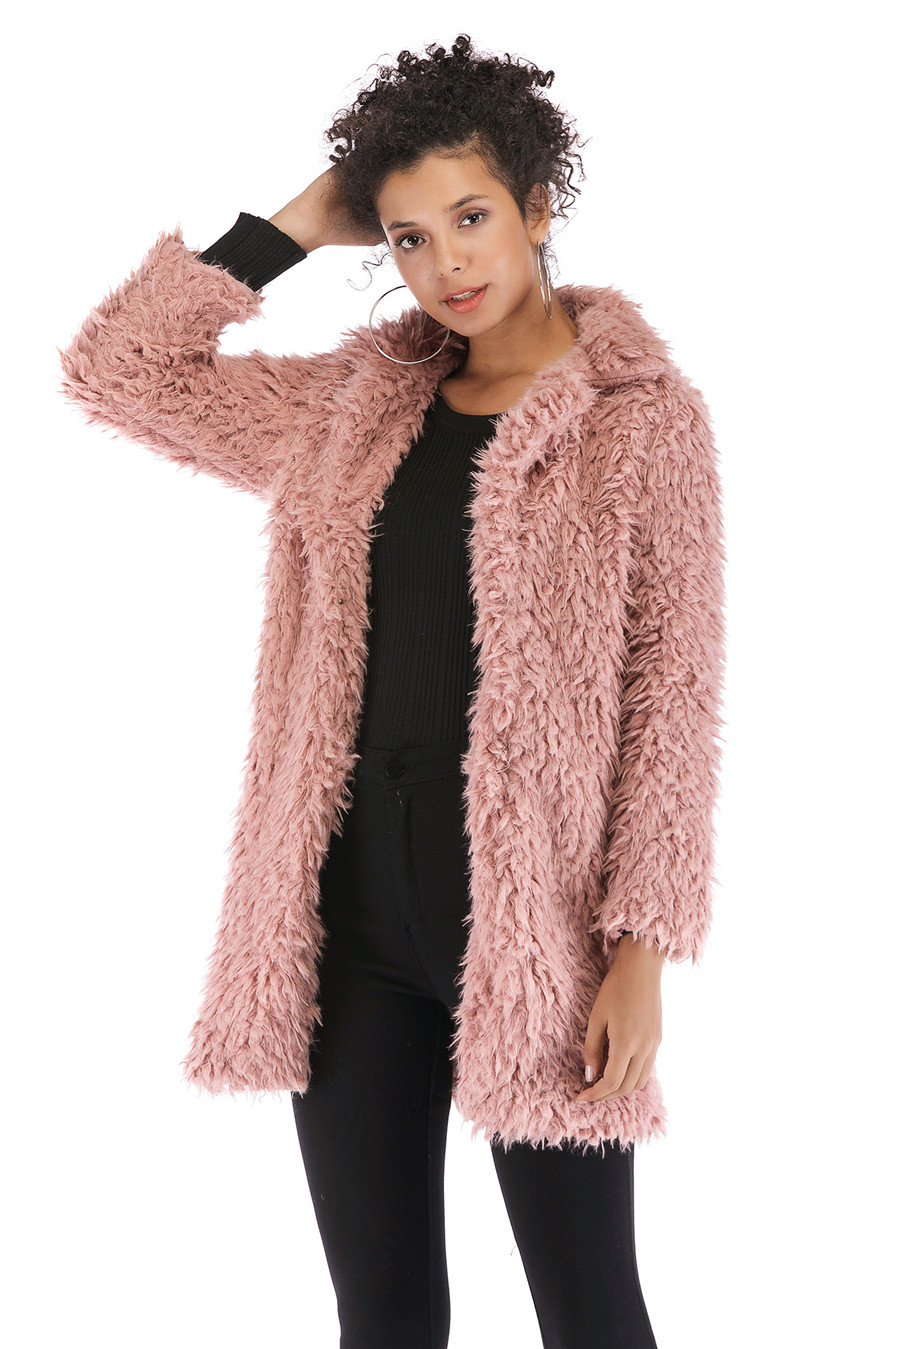 Gladiolus 2018 Women Autumn Winter Coat Turn-Down Collar Long Sleeve Covered Button Long Warm Shaggy Faux Fur Coat Women Jackets (33)